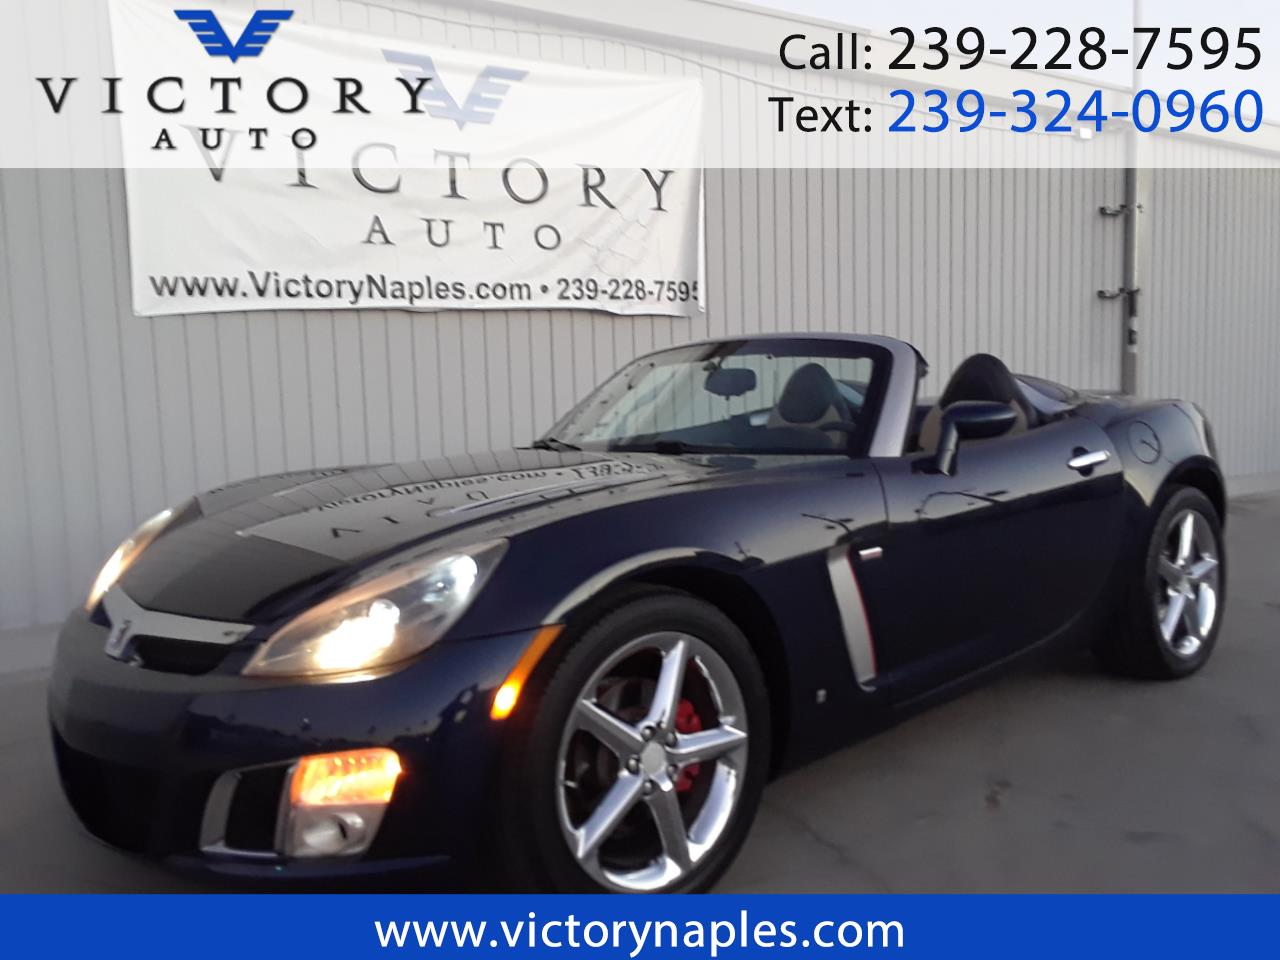 2007 Saturn Sky 2dr Conv Red Line